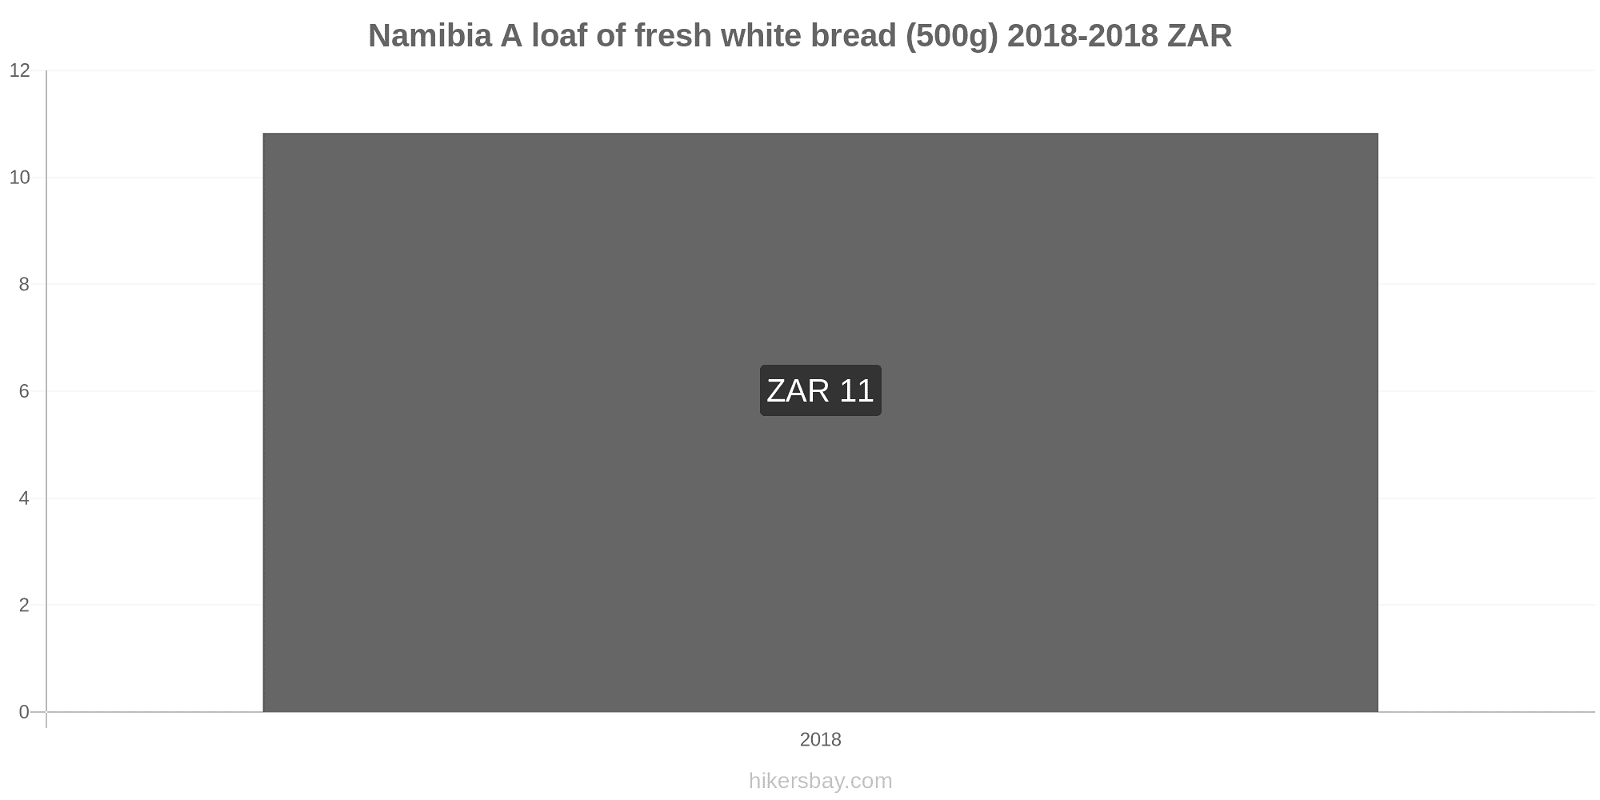 Namibia price changes A loaf of fresh white bread (500g) hikersbay.com